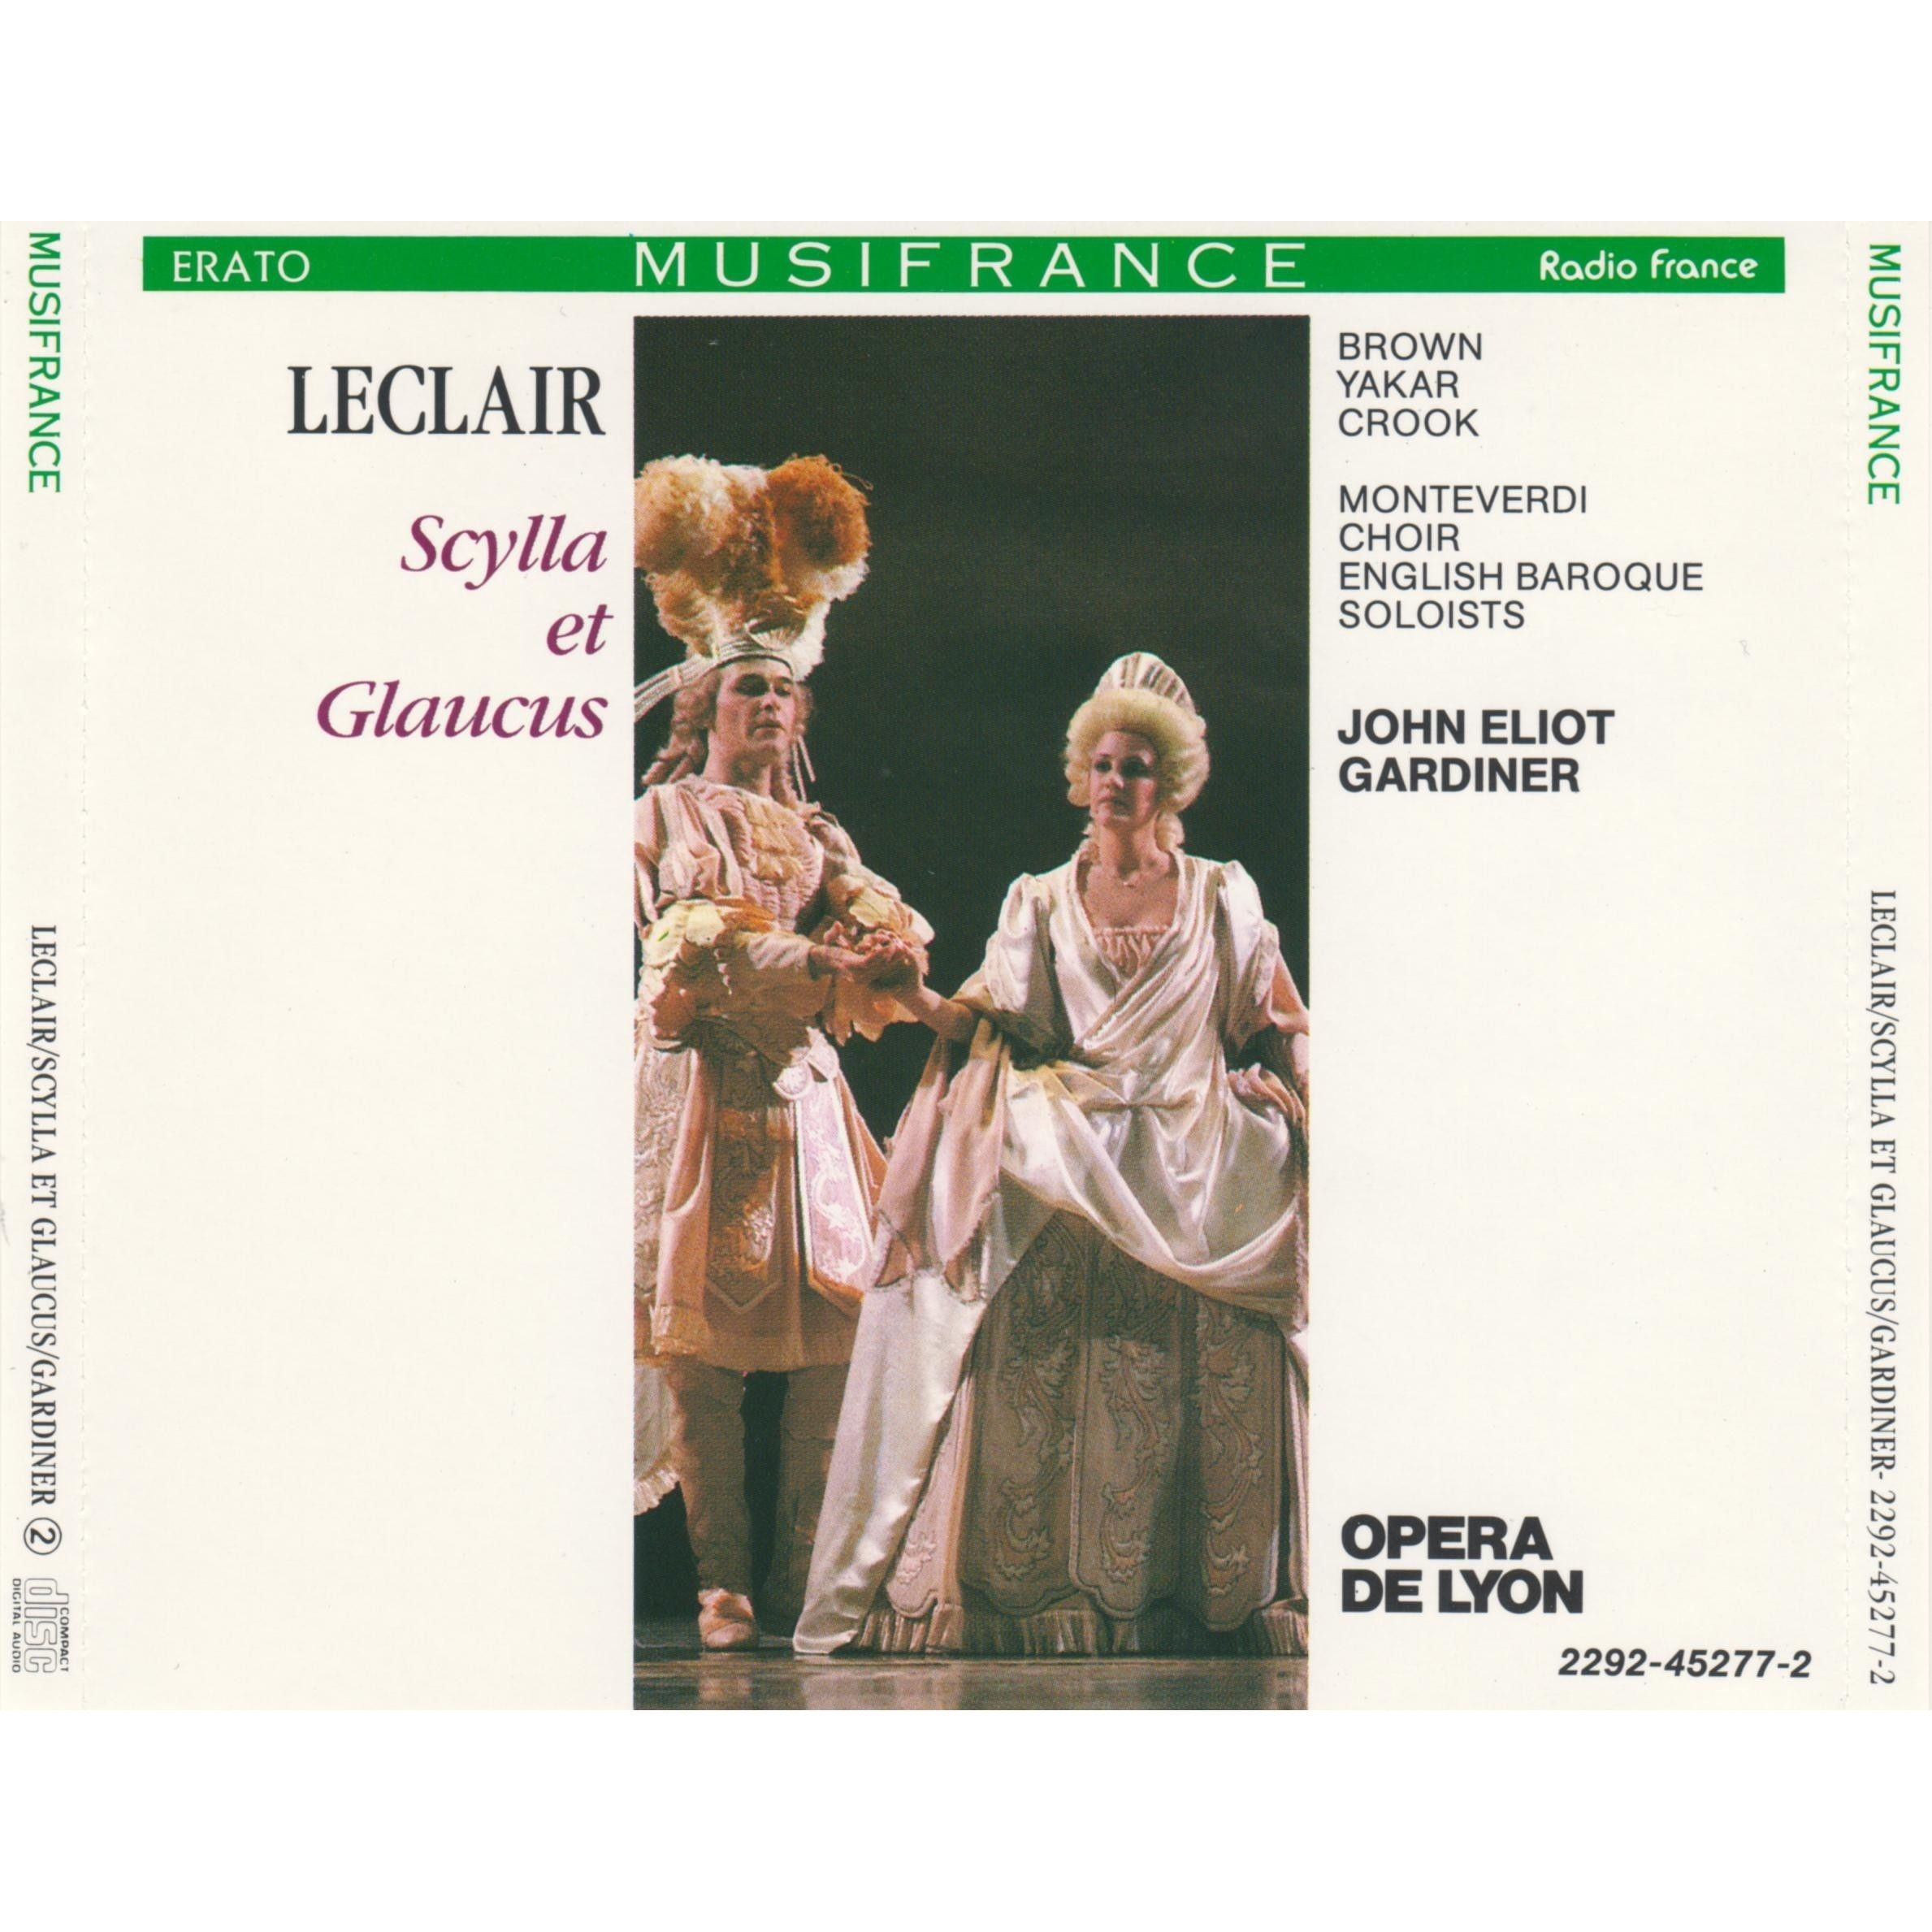 Leclair - D. Brown, R. Yakar, H. Crook, Monteverdi Choir, English Baroque Soloists, John Eliot Gardiner Scylla et Glaucus